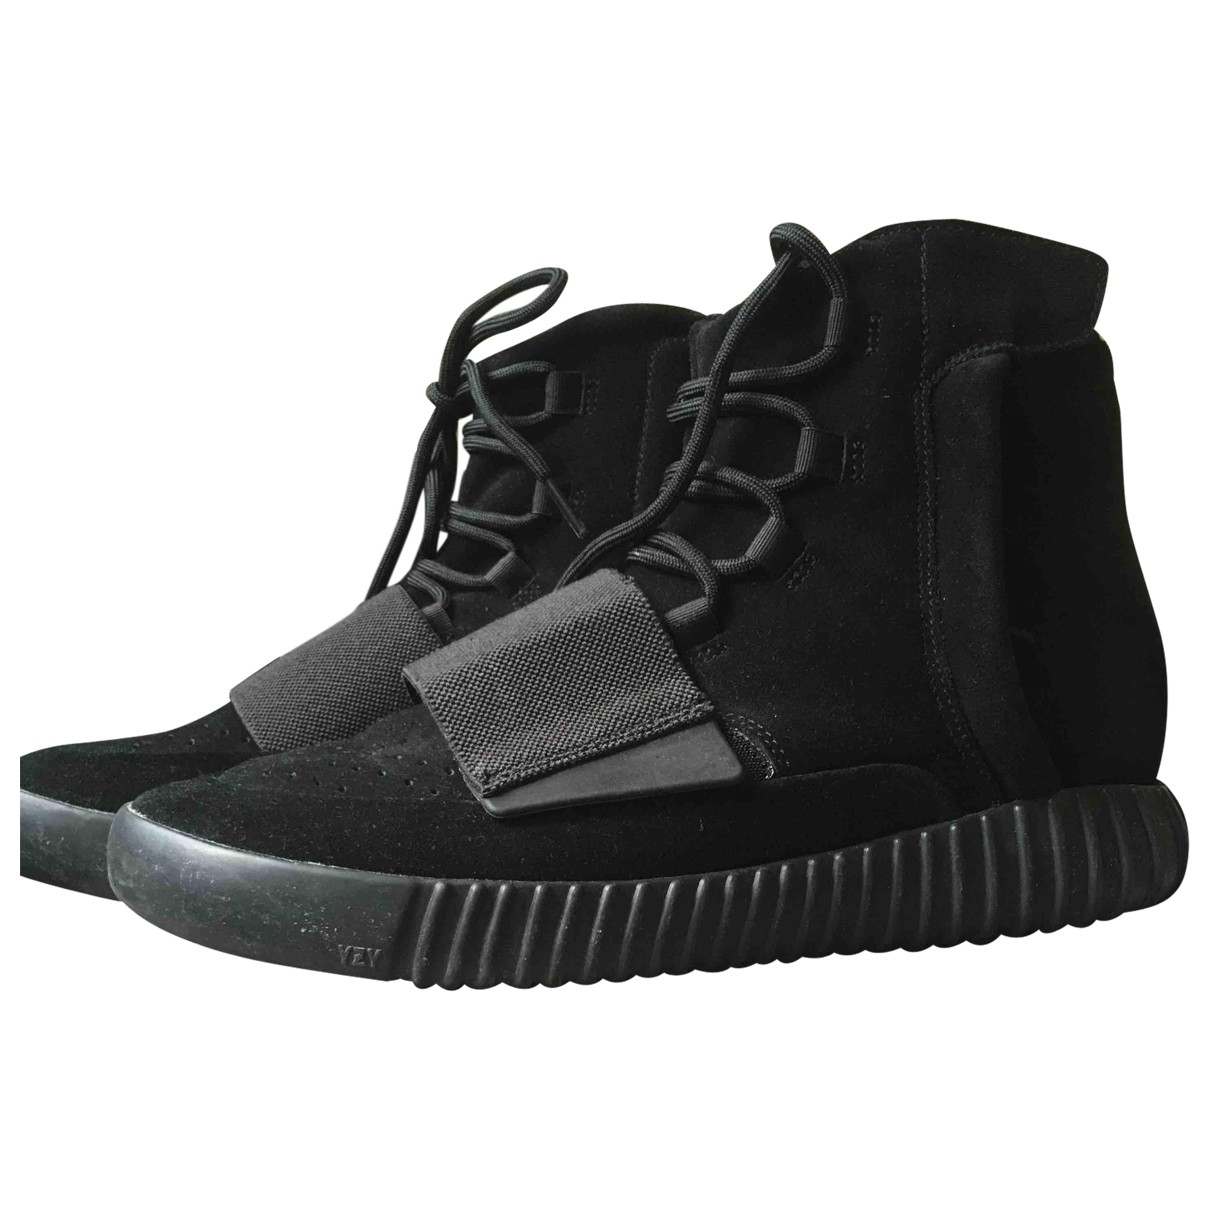 Yeezy X Adidas Boost 750  Black Leather Trainers for Men 45 EU